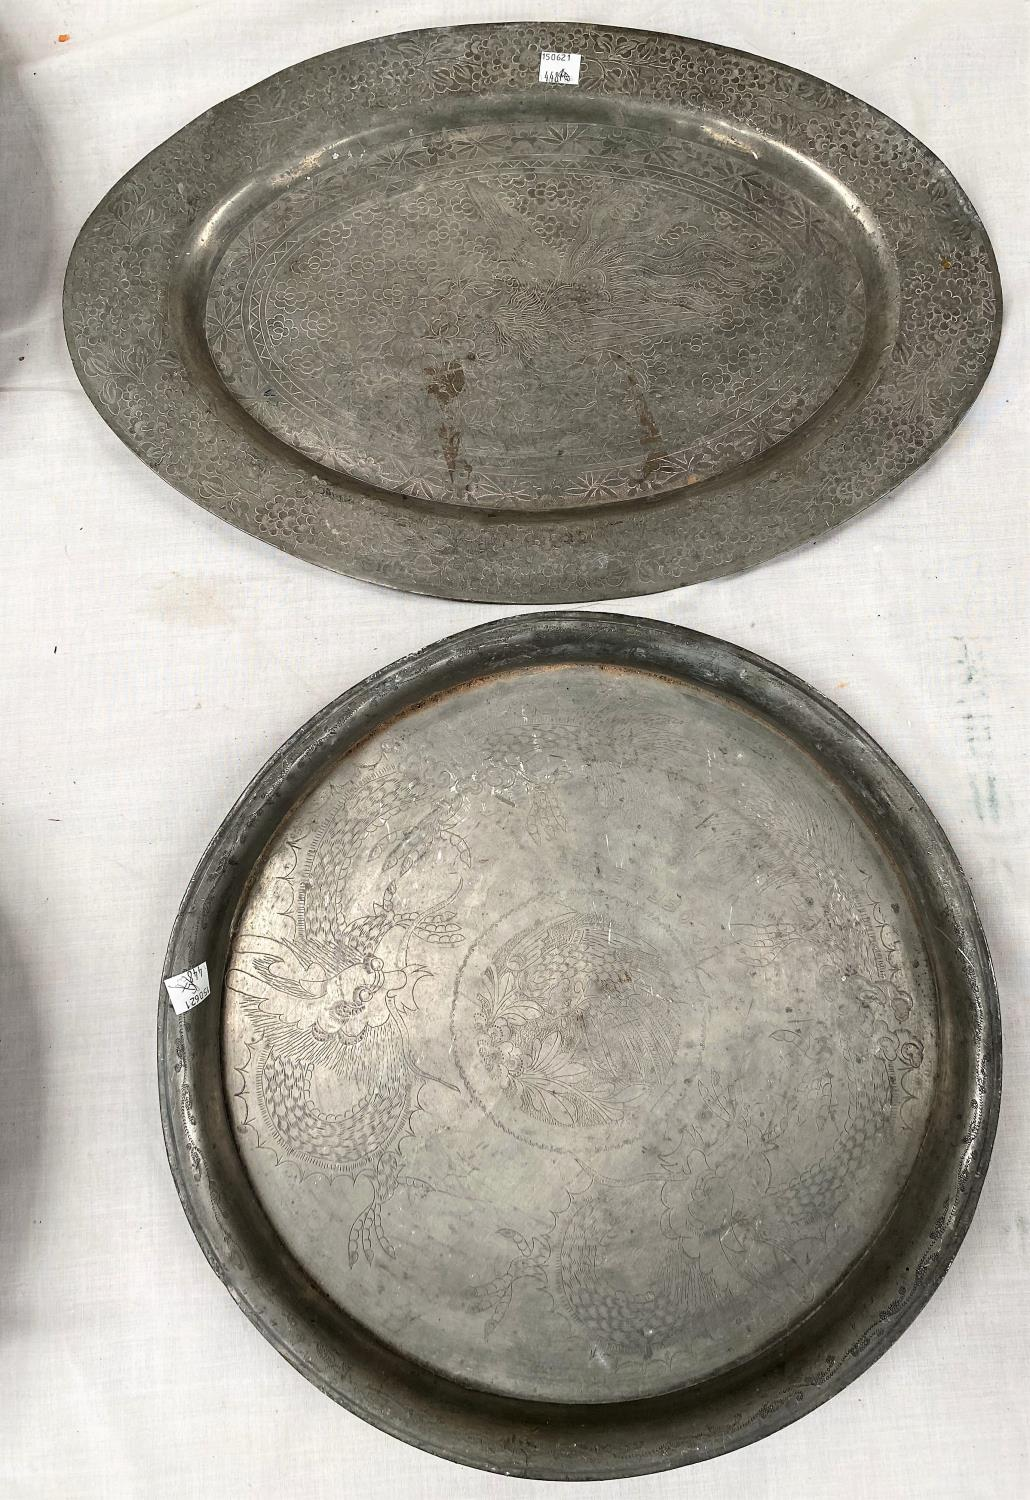 Two 20th century Chinese pewter trays - circular one with dragons, oval with mythical bird, 34cm x